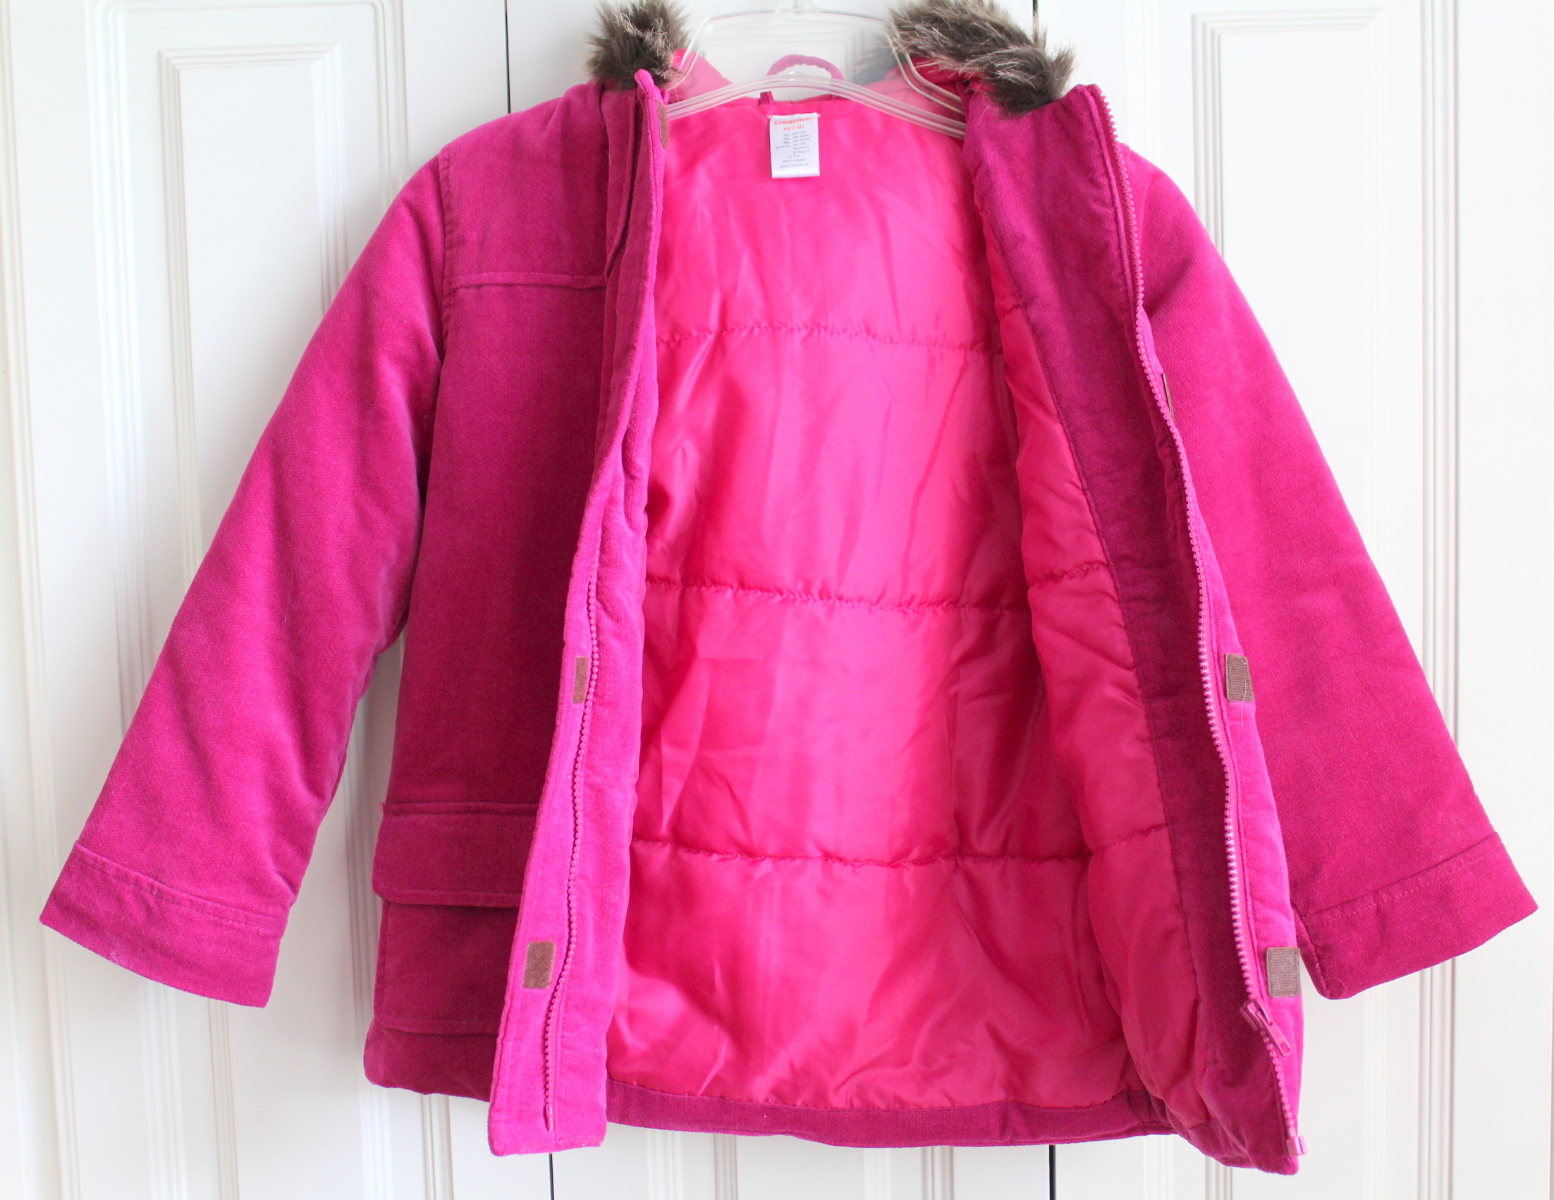 Fuschia Pink Coat Han Coats